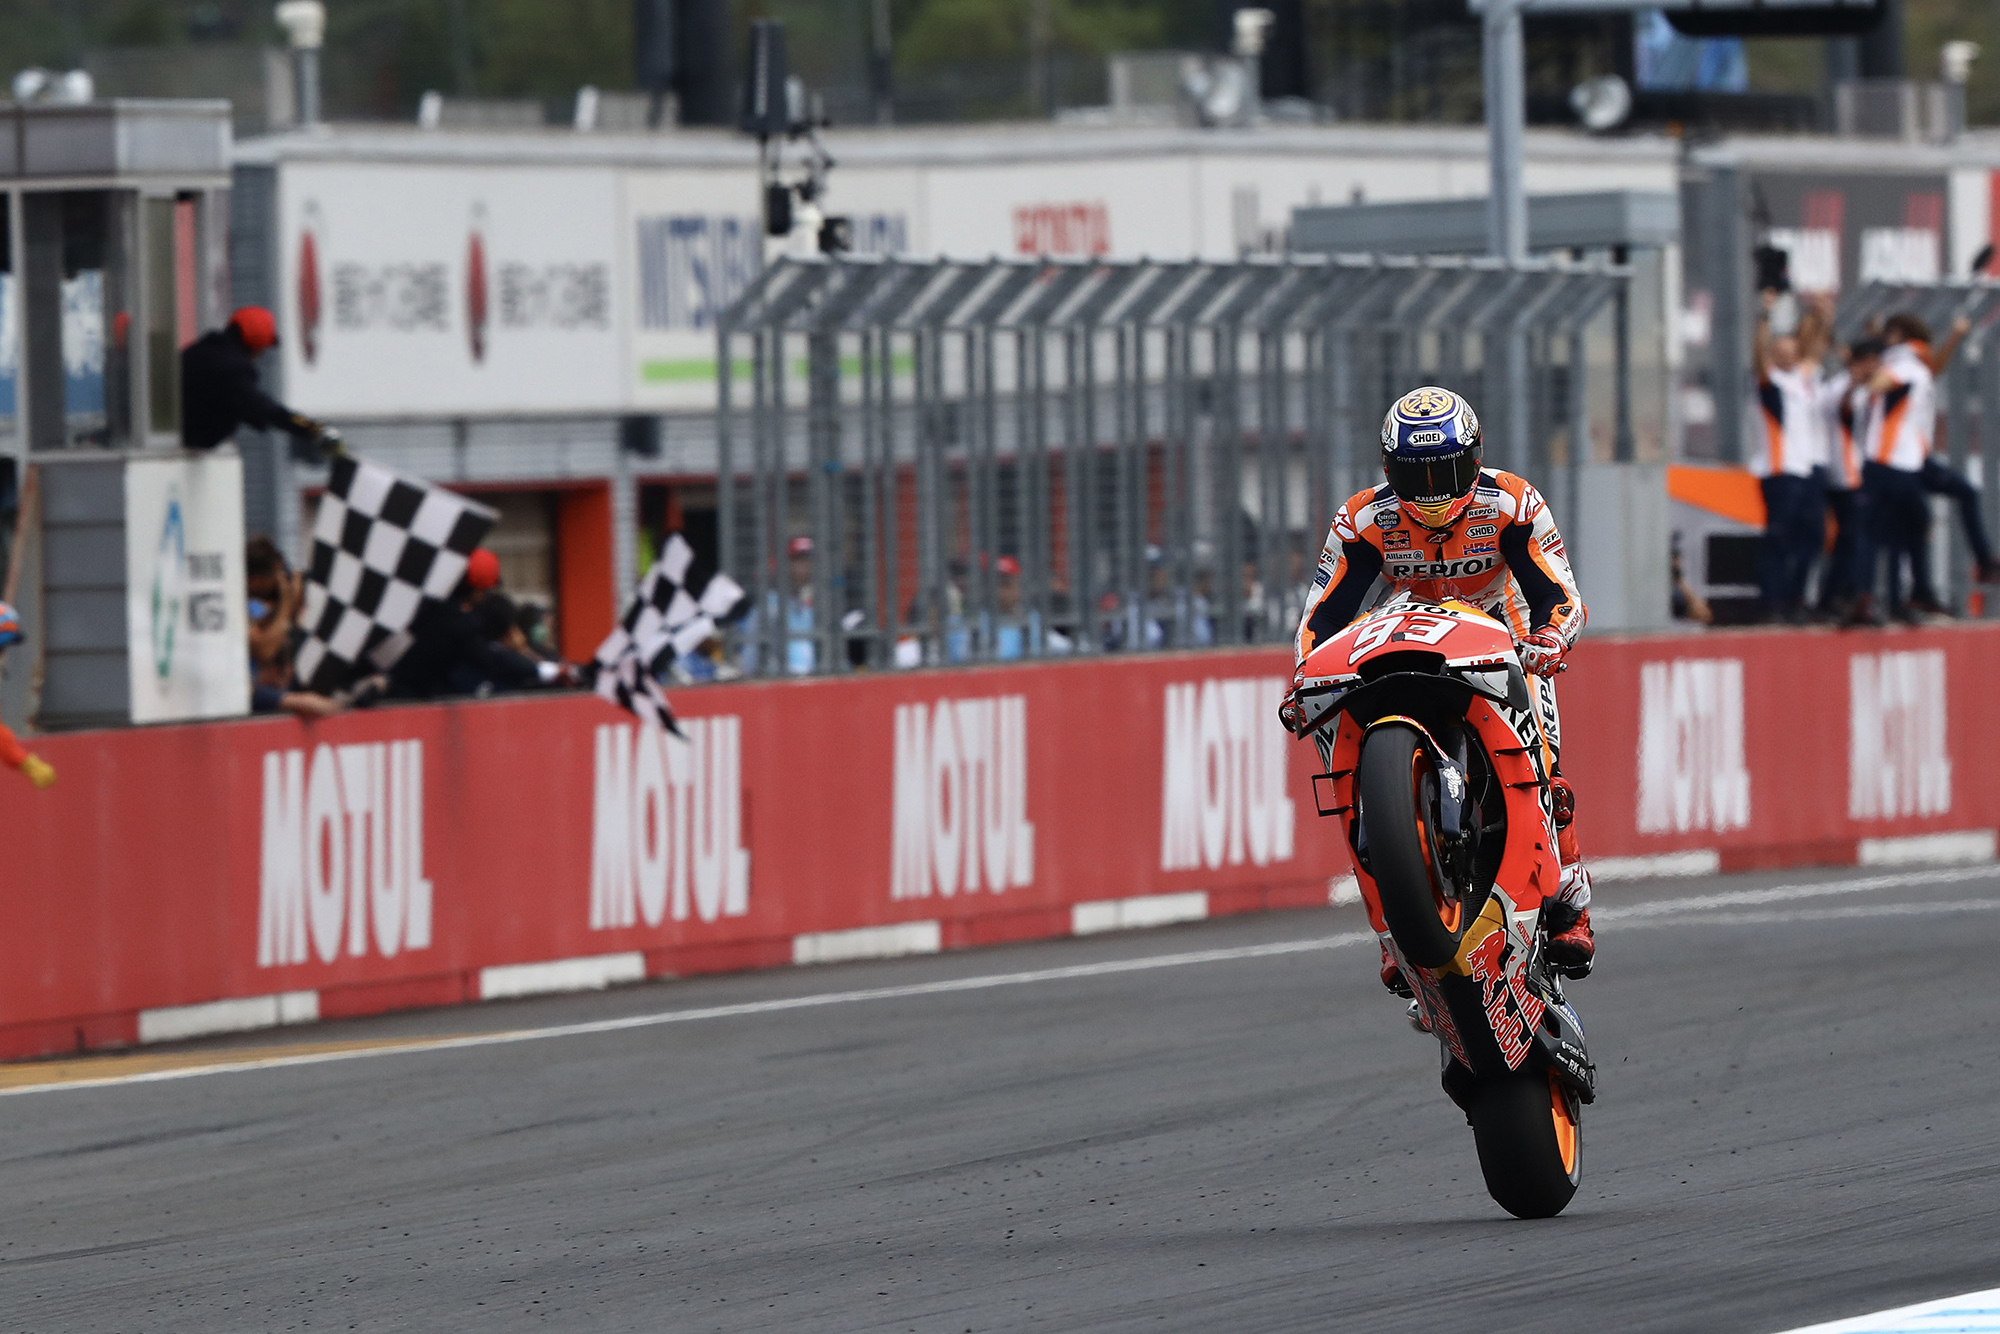 Marc Marquez takes the chequered flag with a wheelie to win the 2019 MotoGP Grand Prix of Japan